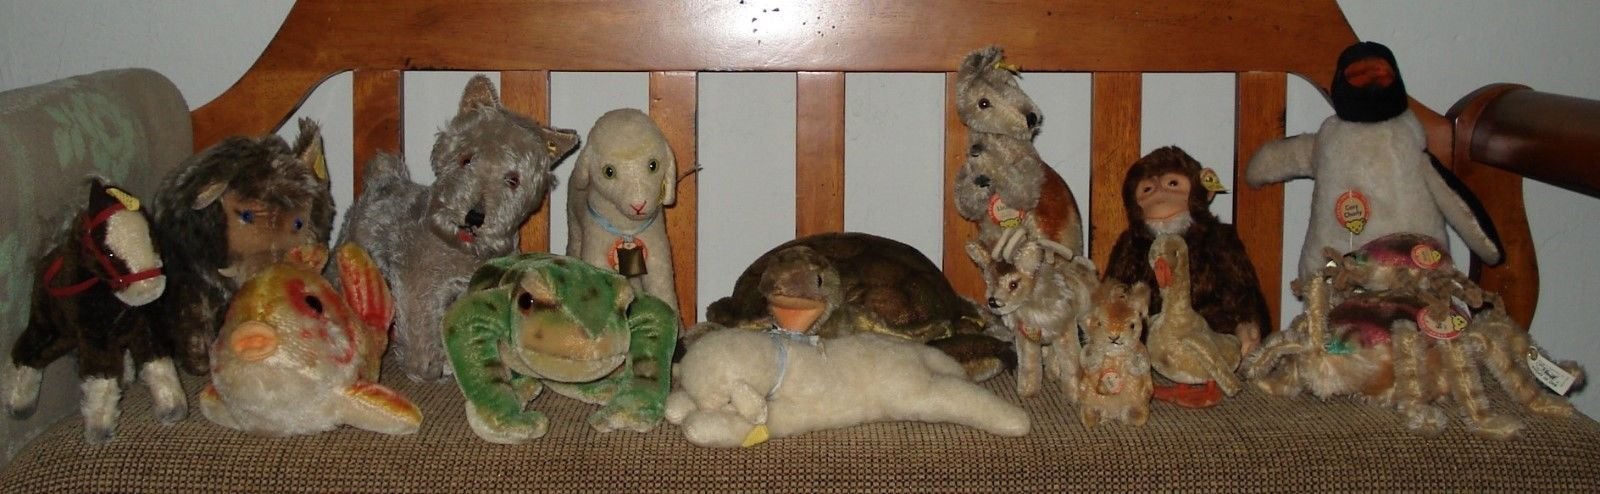 Steiff Knopf Im Ohr Collection Of 13 Stuffed Animals 1961 to 1992